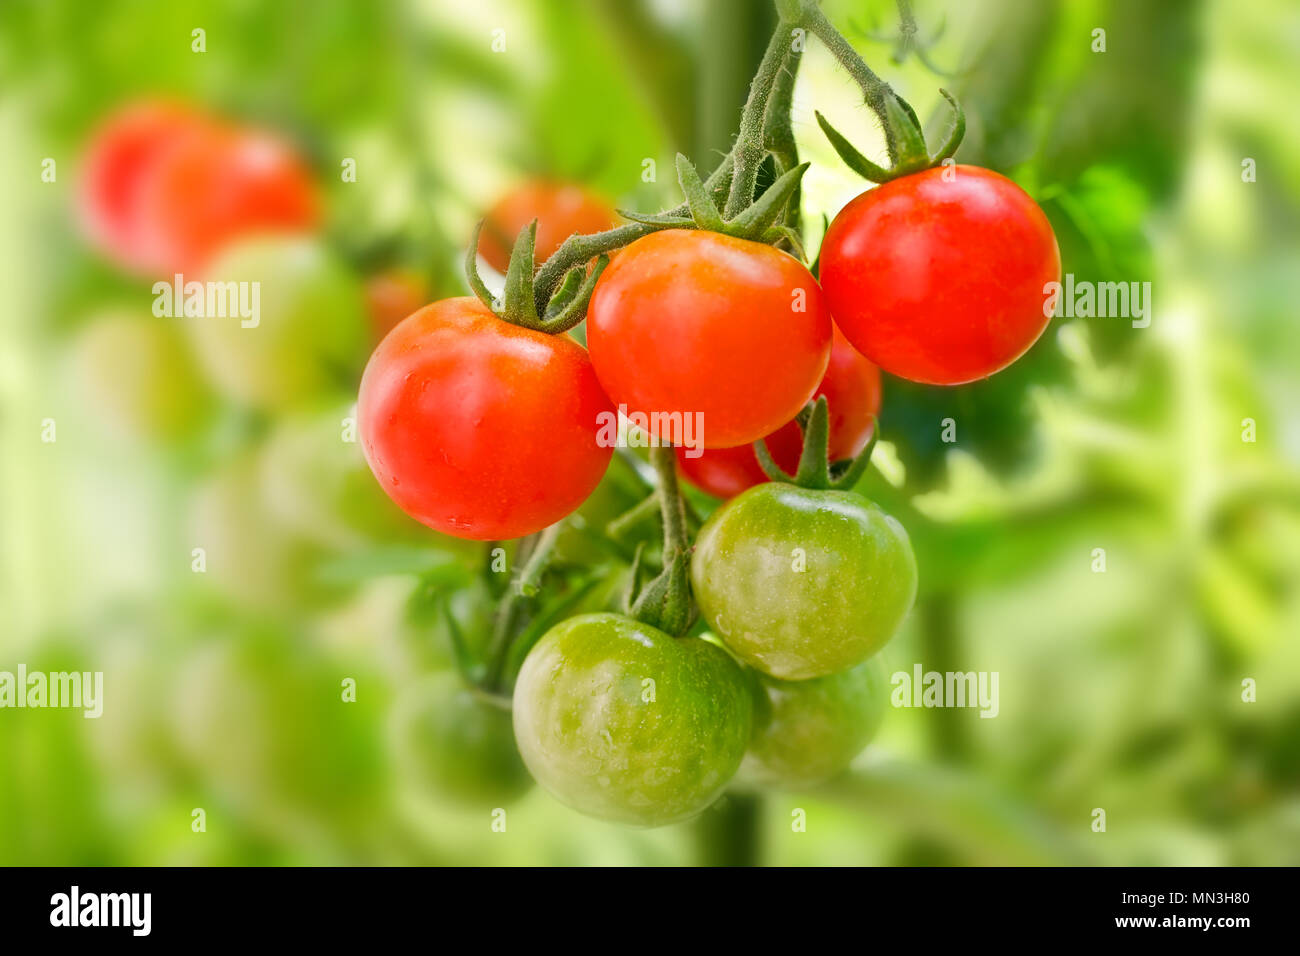 Close up of cherry tomatoes growing in a vegetable garden - Stock Image